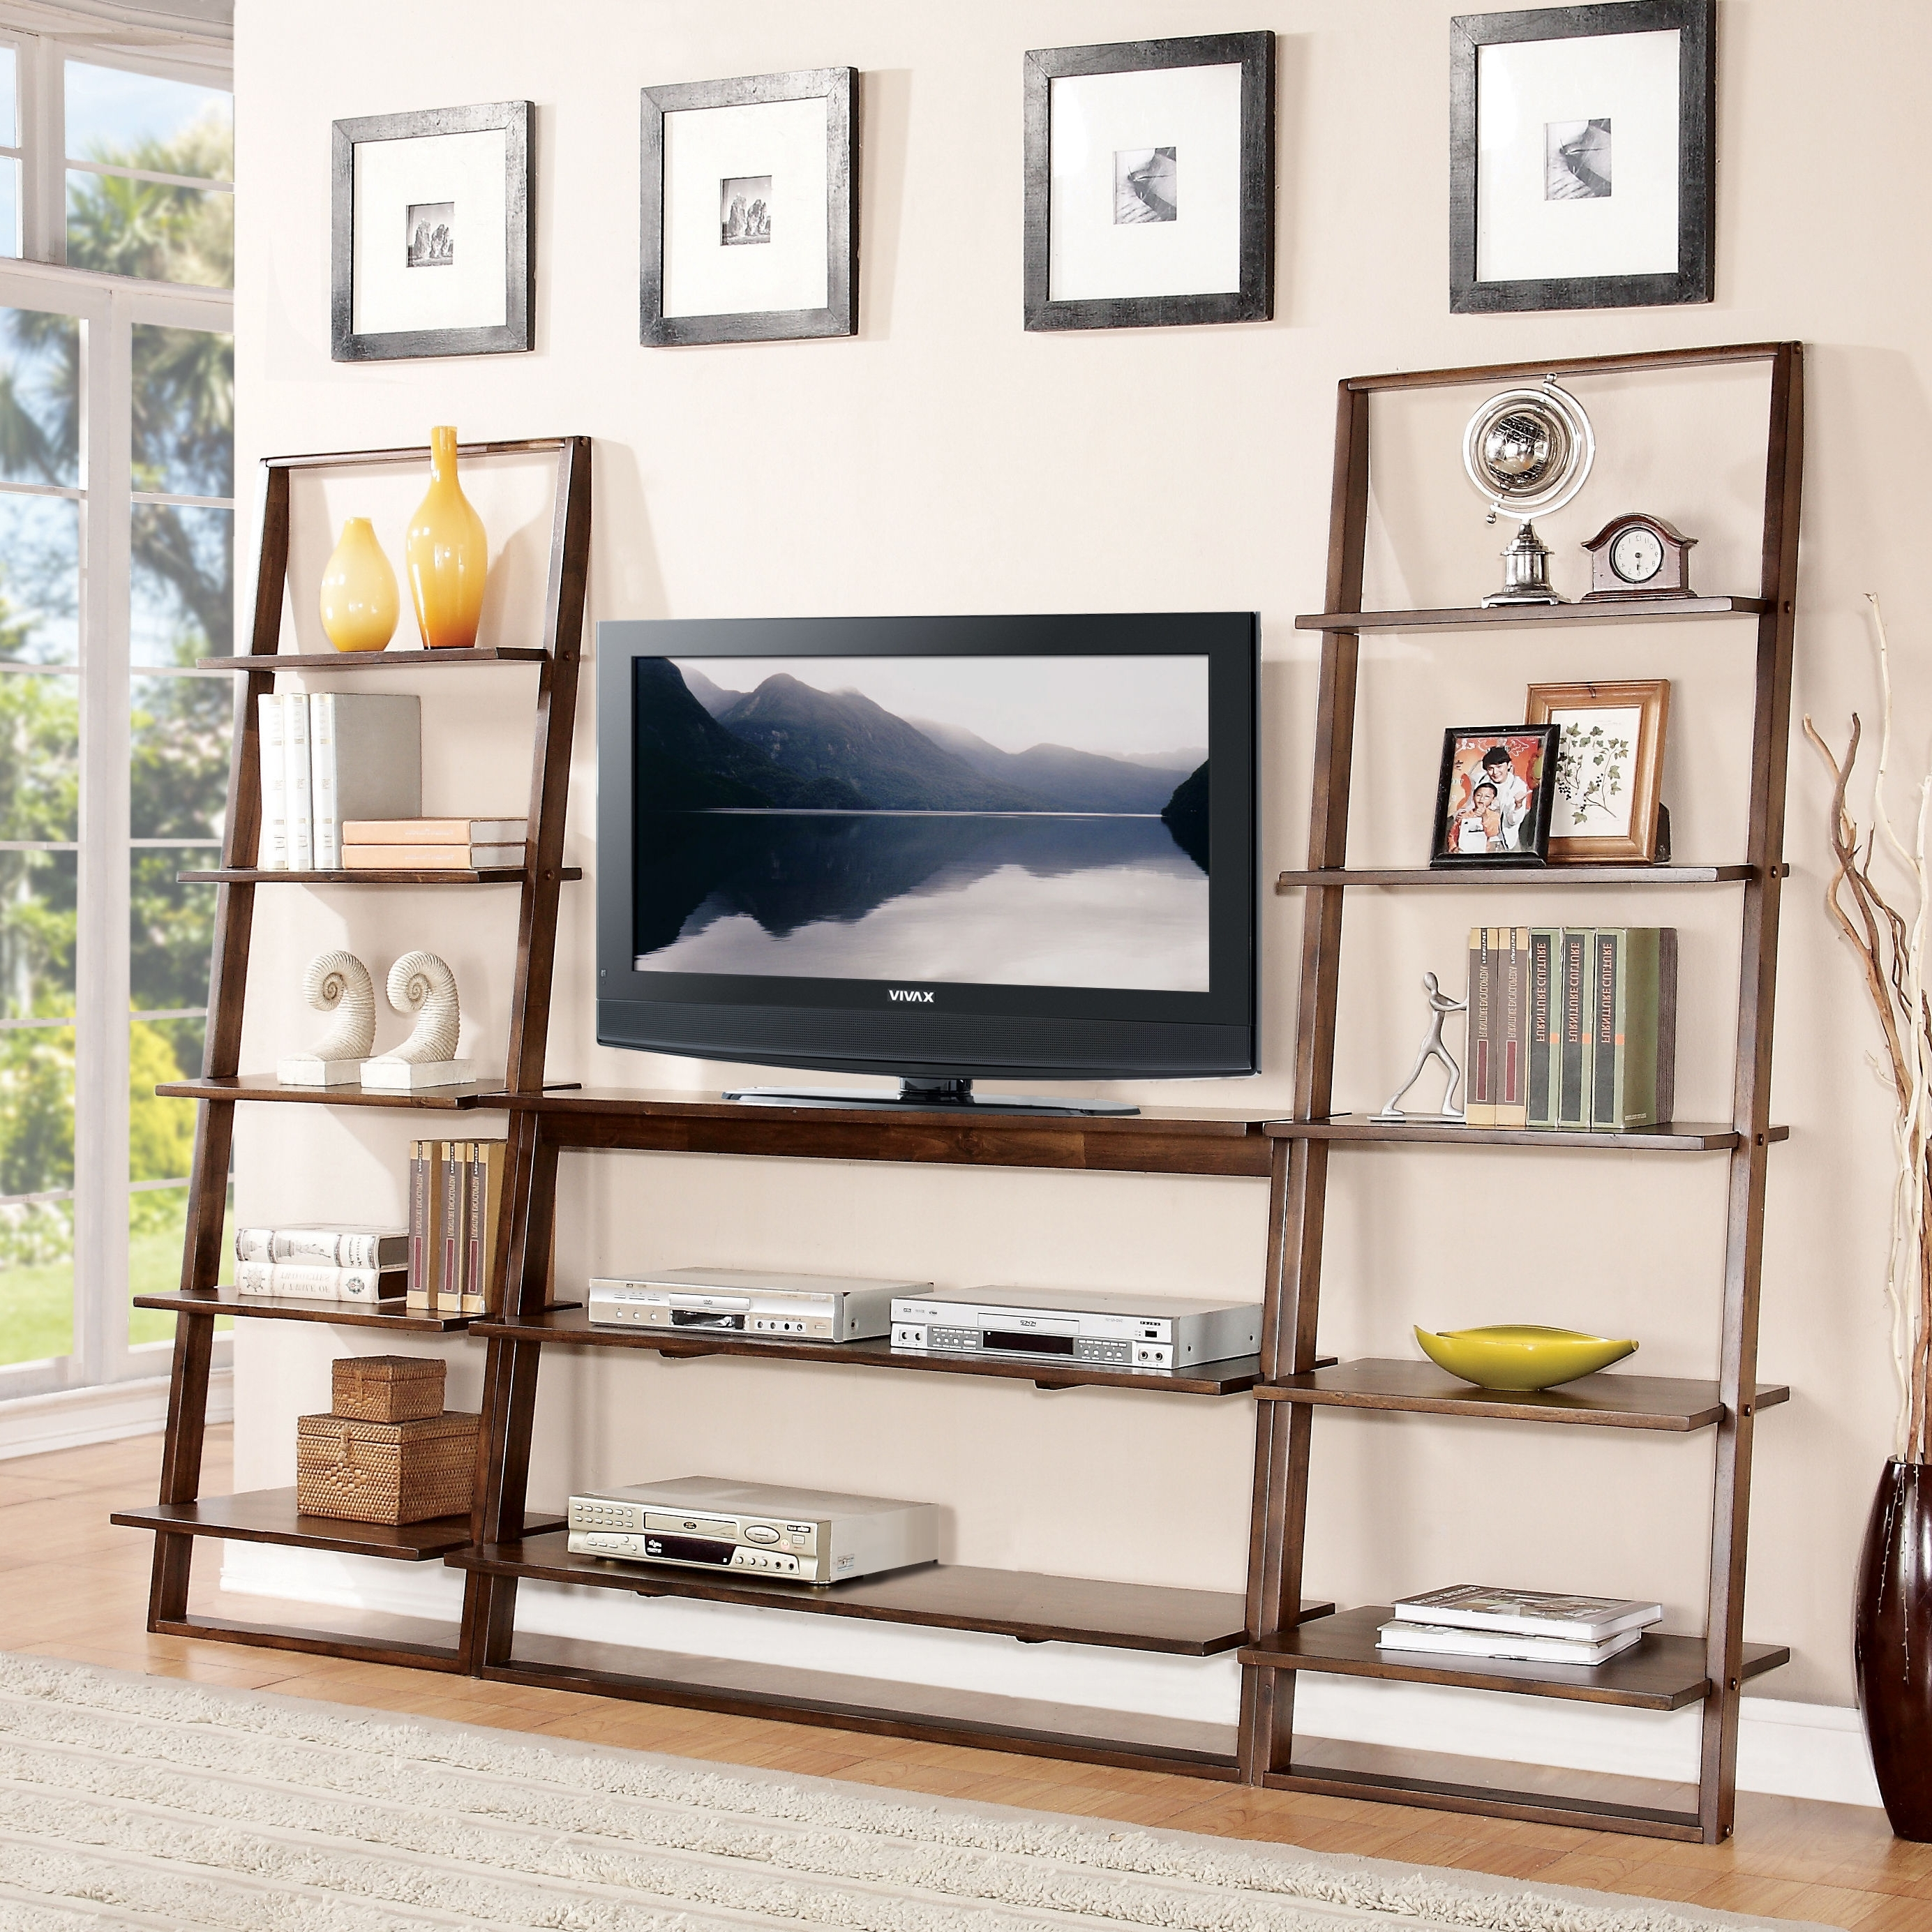 Well Known Contemporary Leaning Bookcase Ideas: Minimalist Leaning Bookcase For Bookshelves With Tv Space (View 13 of 15)